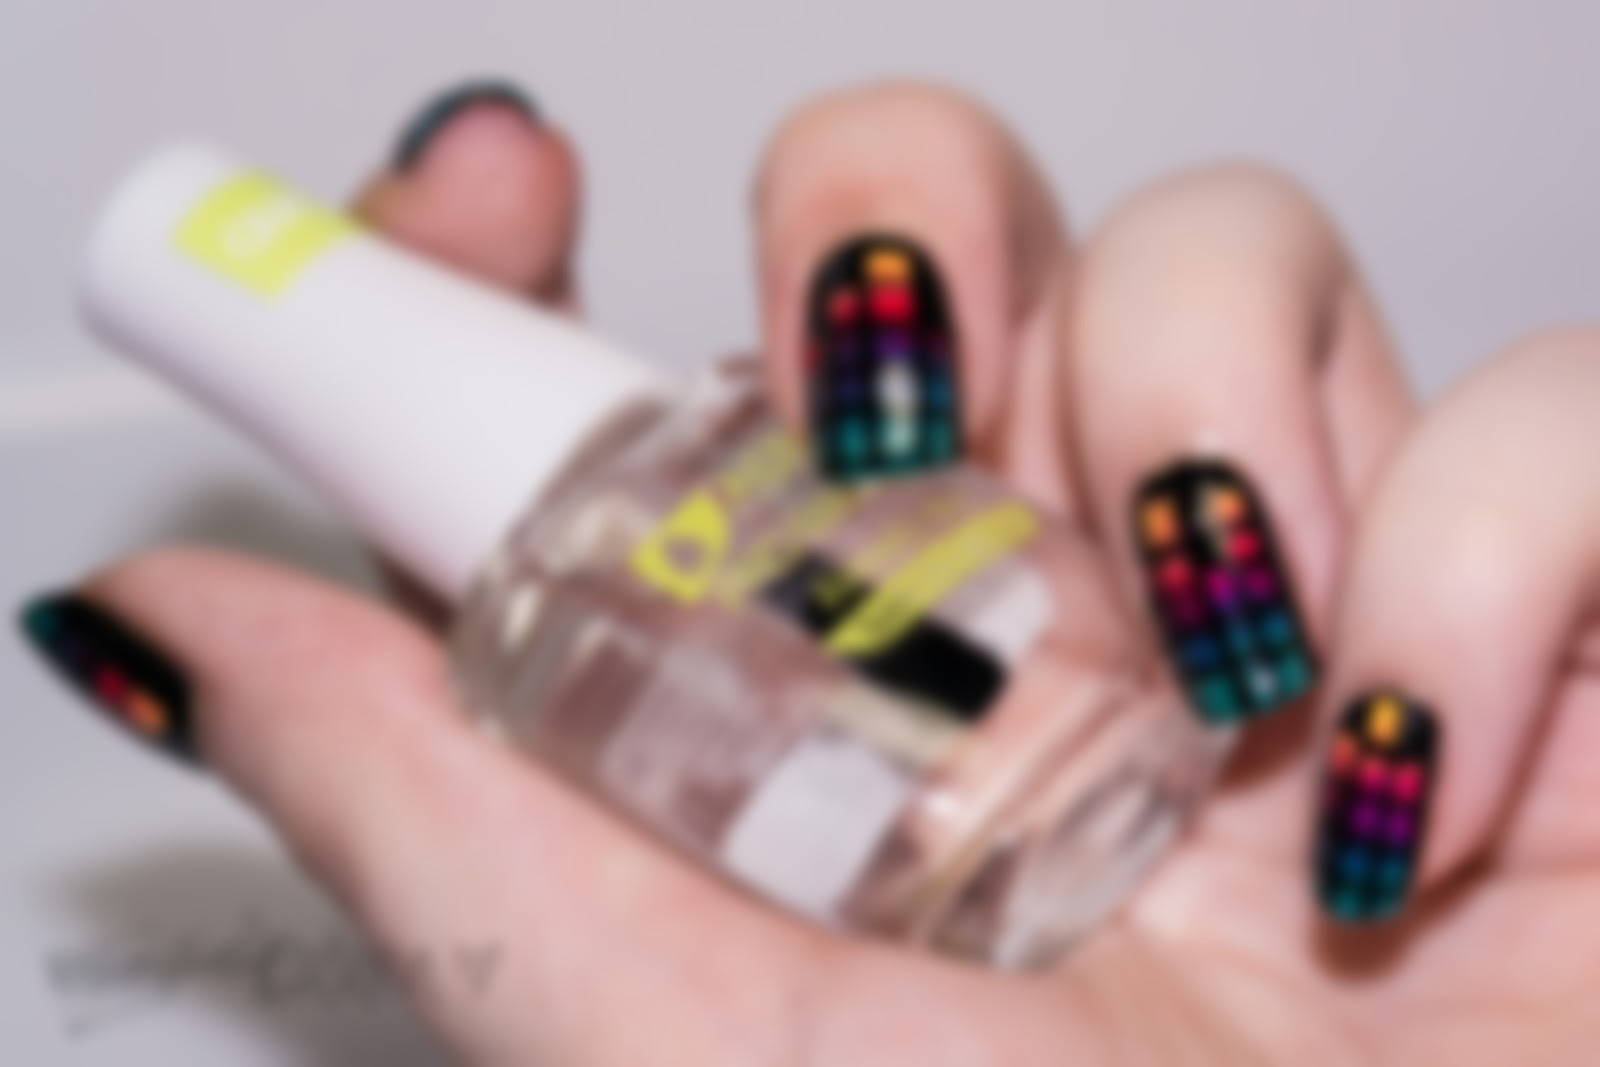 http://rainpow-nails.blogspot.de/2014/08/tape-month-kommt-mit-mir-nach-gradient.html